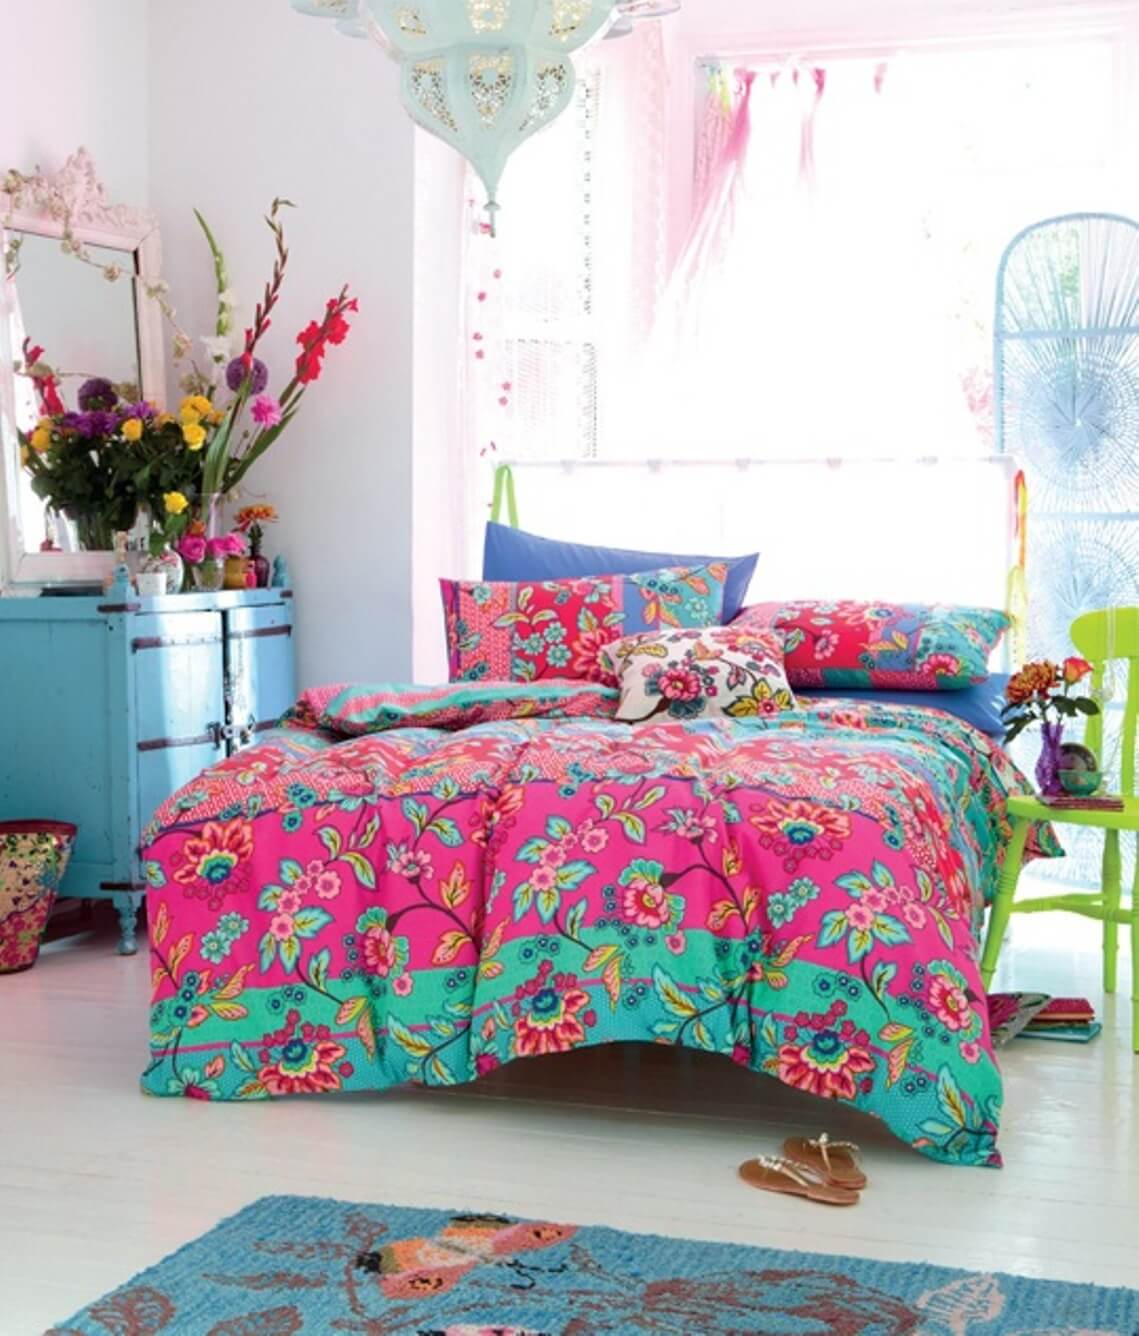 Colorful Kids Room Design: 8 Bohemian Chic Teen Girl's Bedroom Ideas